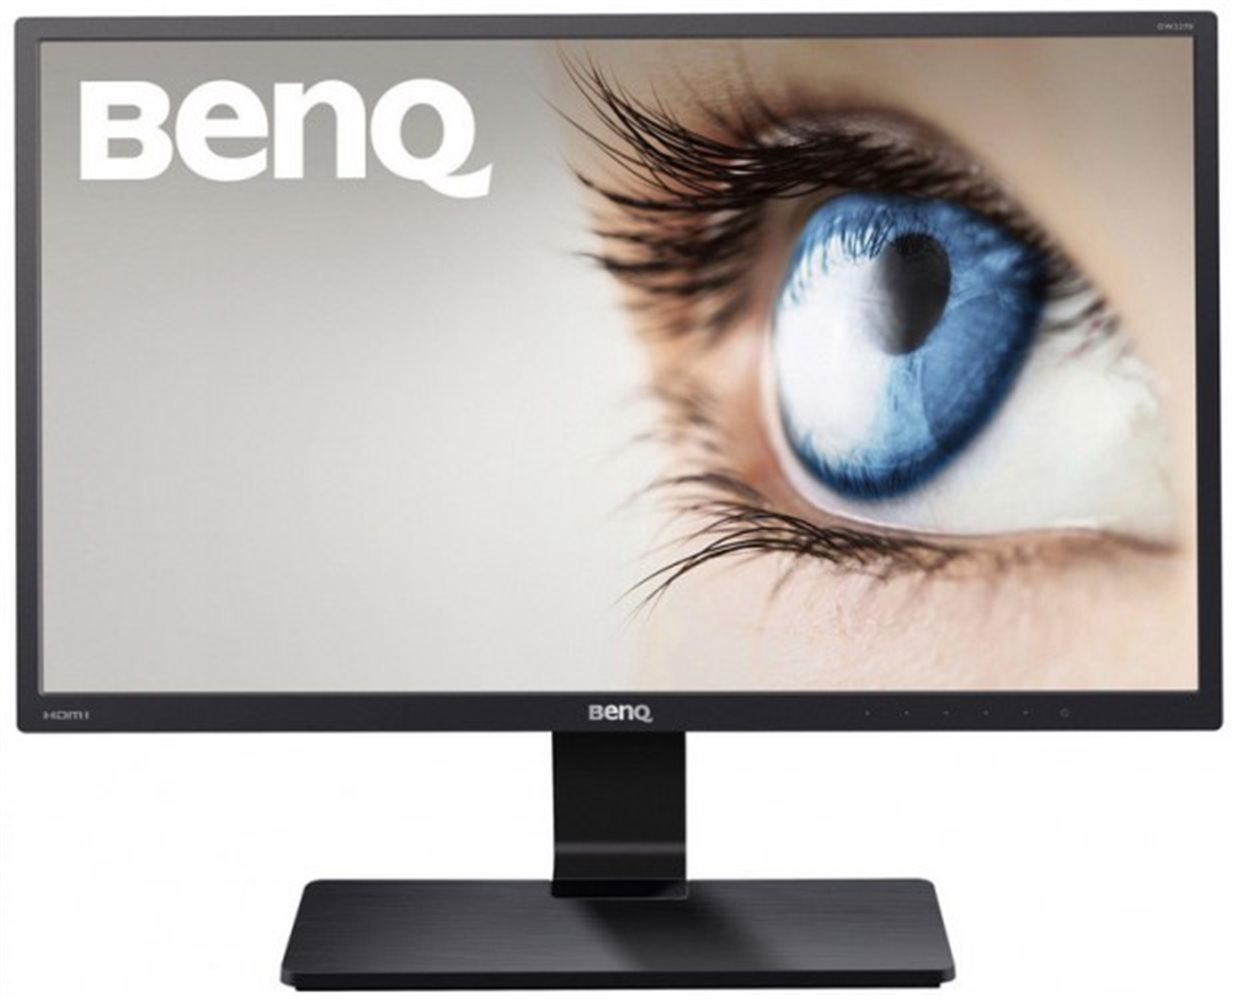 "BenQ LCD GL2580HM Black 24,5""W/TN LED/FHD/12M:1/2ms/DVI/HDMI/repro/Flicker-free/Low Blue Light"